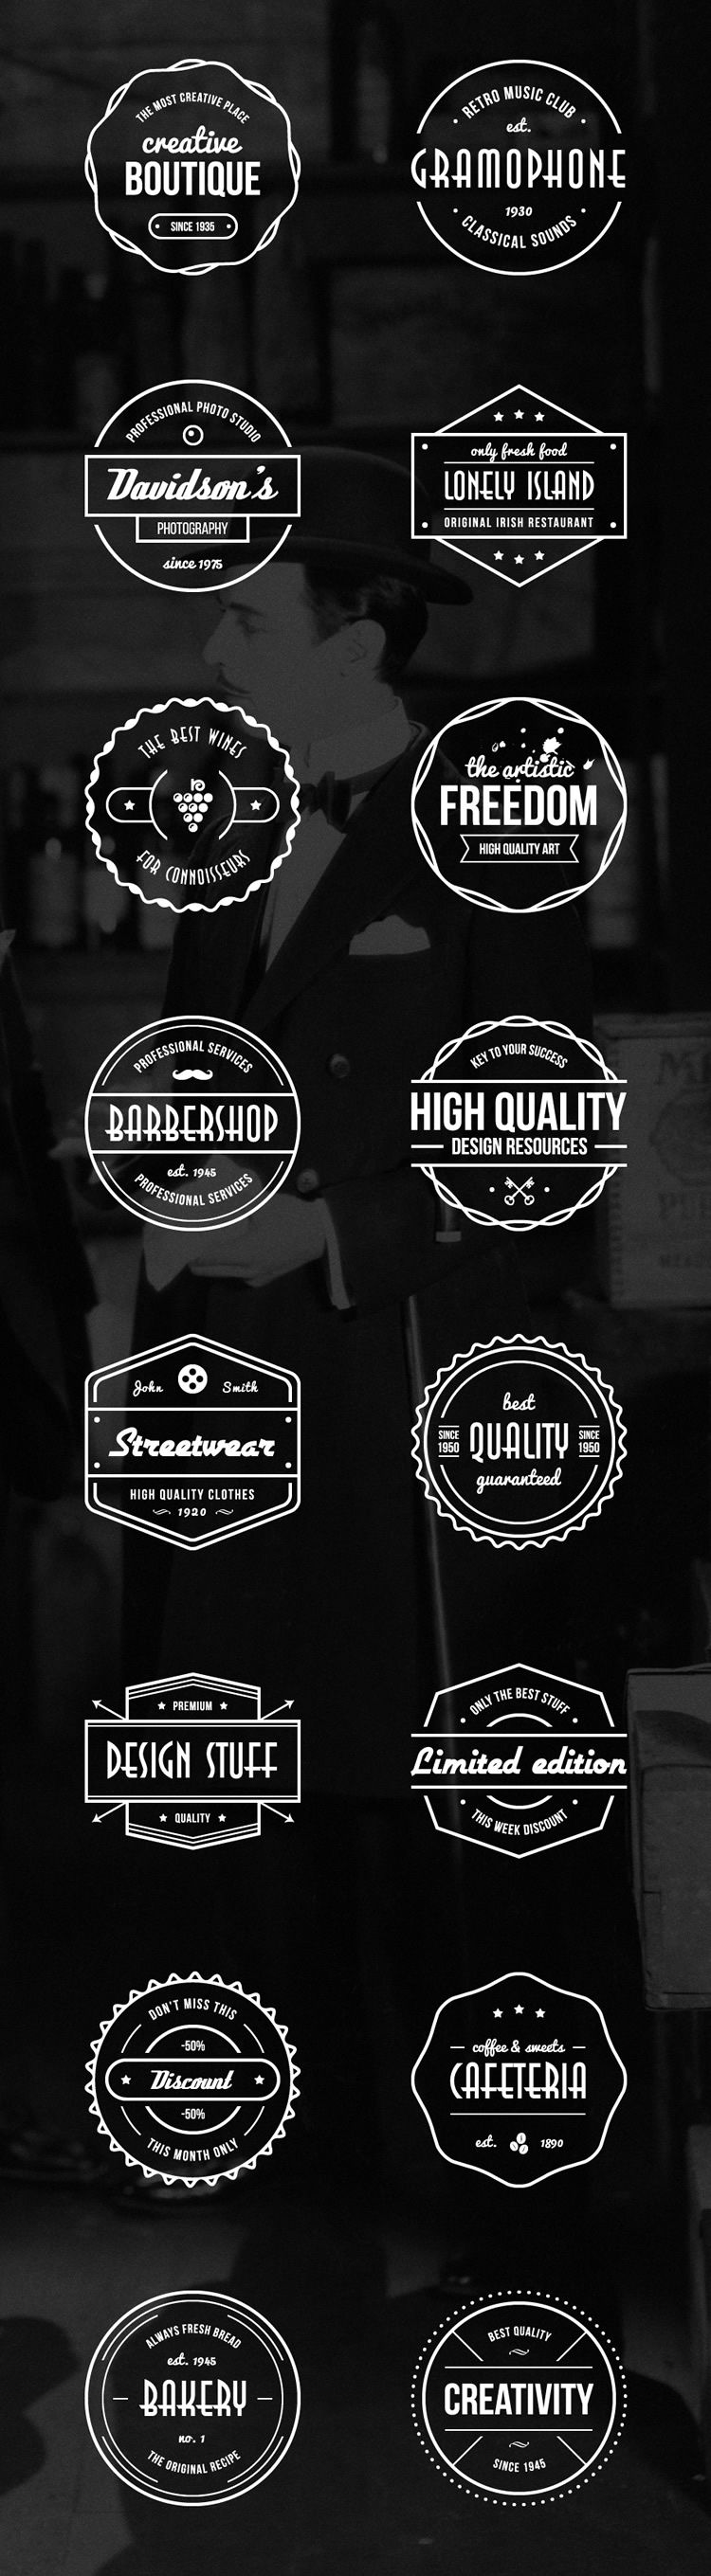 16 Free Vintage Logo & Badge Vector Templates (AI & EPS